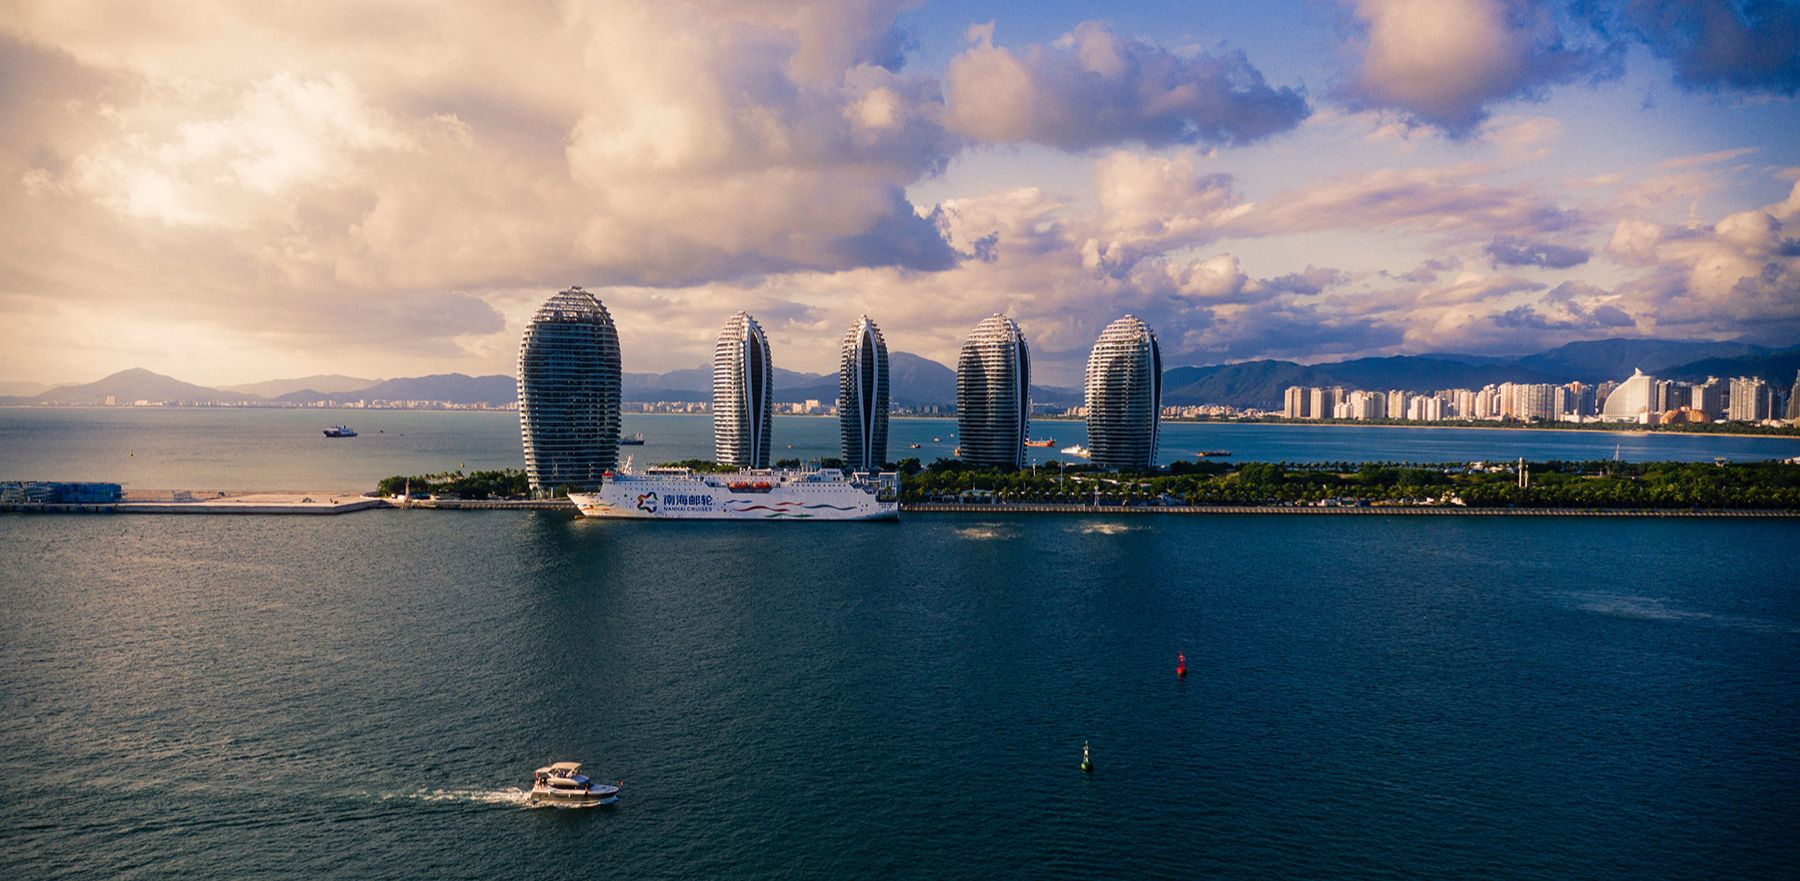 The Hainan Luxury Hotspot – Fad or Trend?